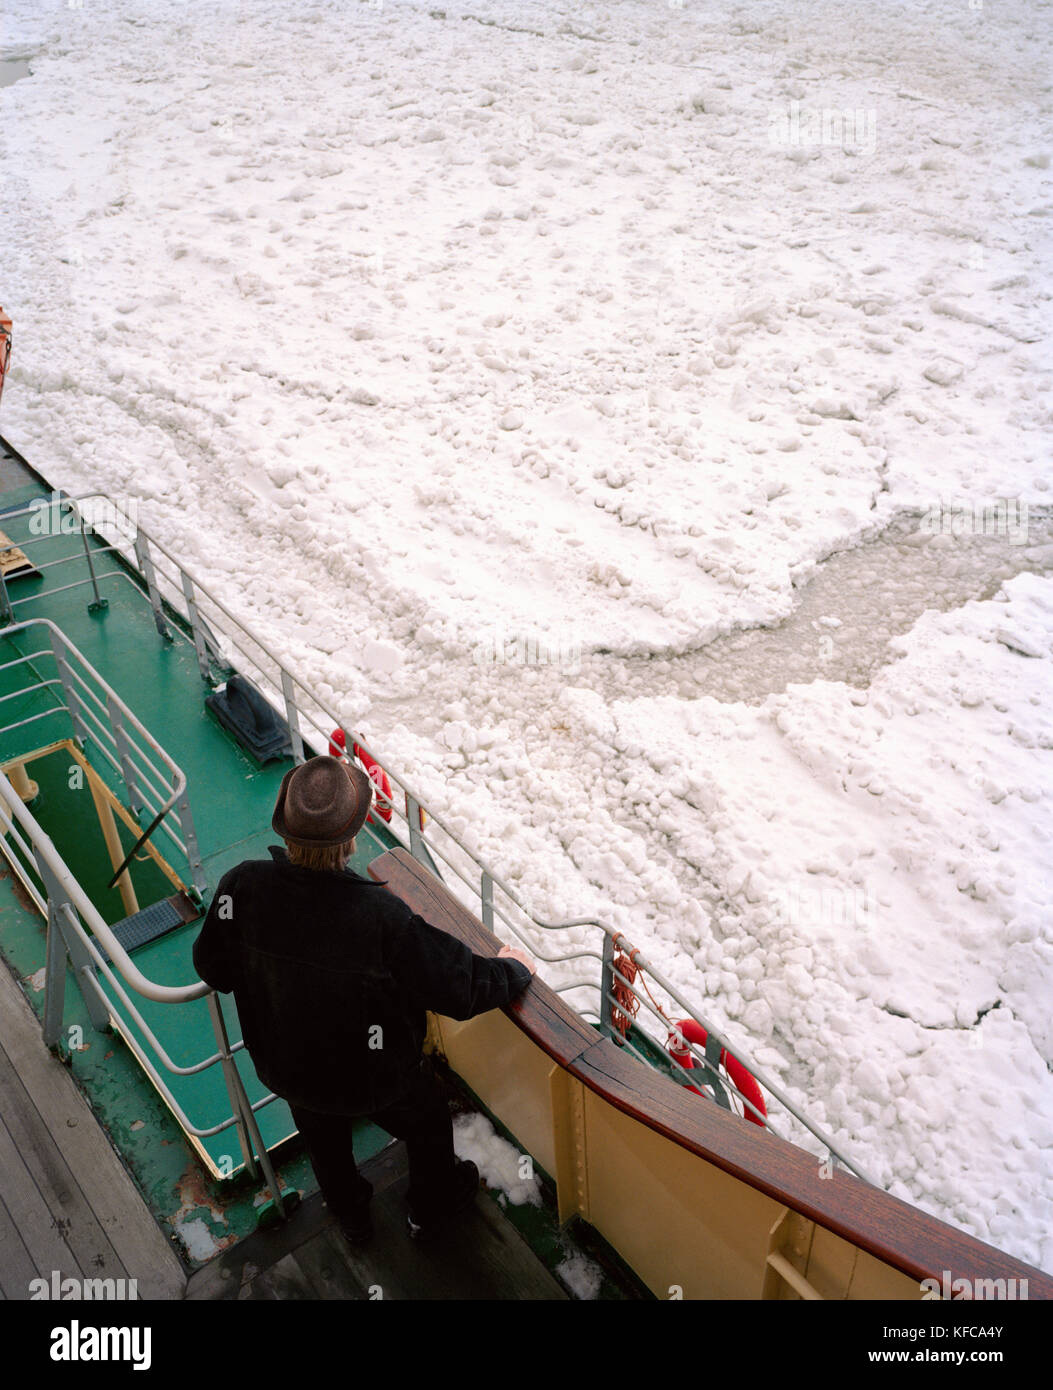 FINLAND, Kemi, Arctic, elevated view of a man standing onboard the ice breaker Sampo in Kemi. - Stock Image